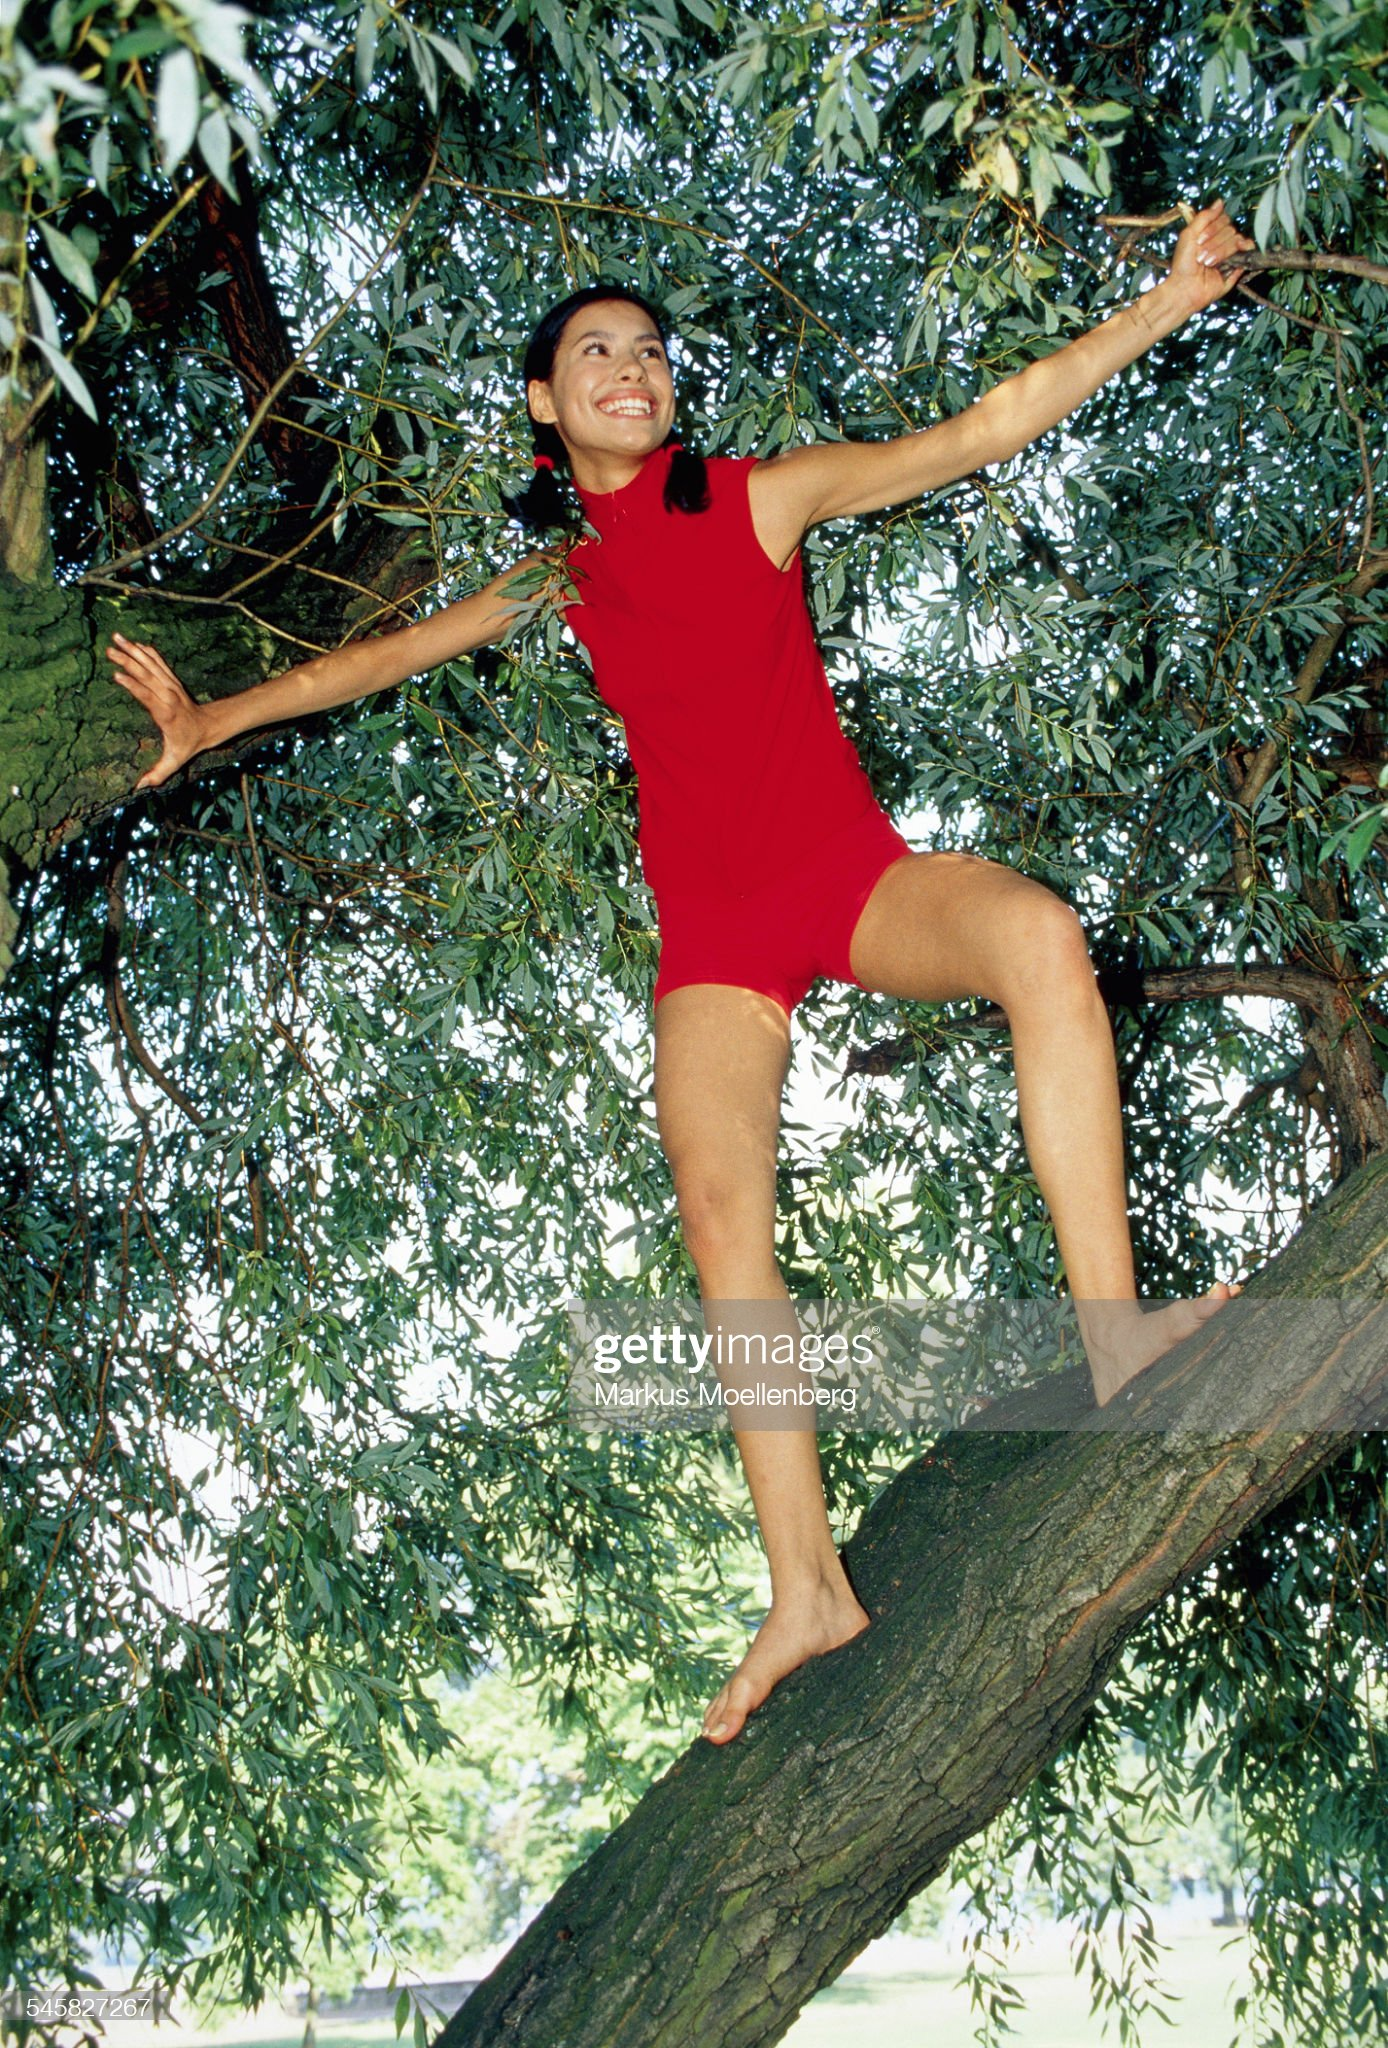 https://media.gettyimages.com/photos/darkhaired-young-woman-with-pigtails-balacing-on-a-tree-picture-id545827267?s=2048x2048